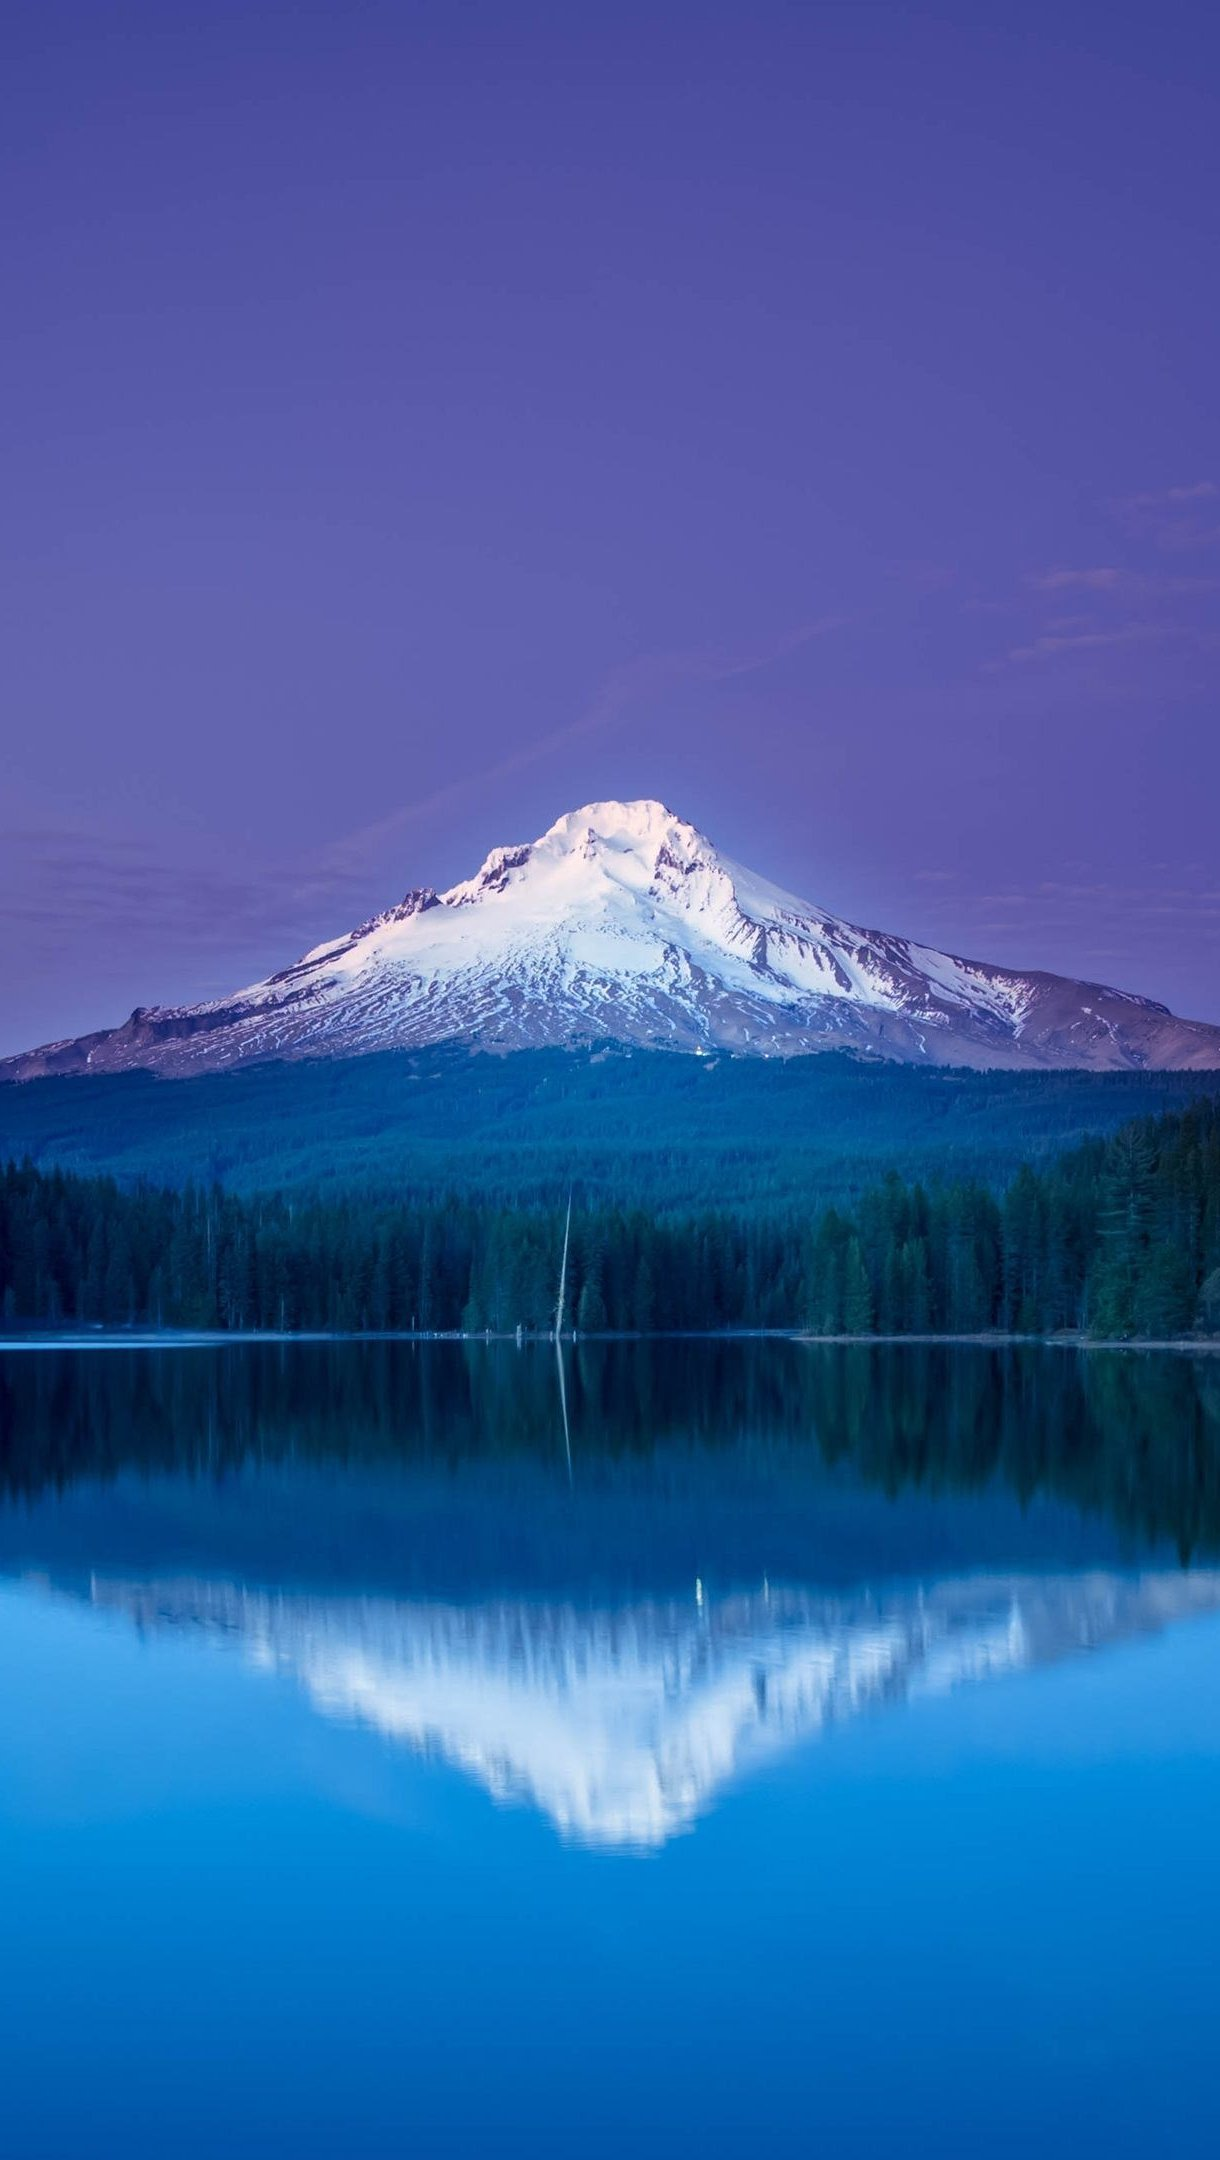 Wallpaper Mountain reflected in lake at night Vertical